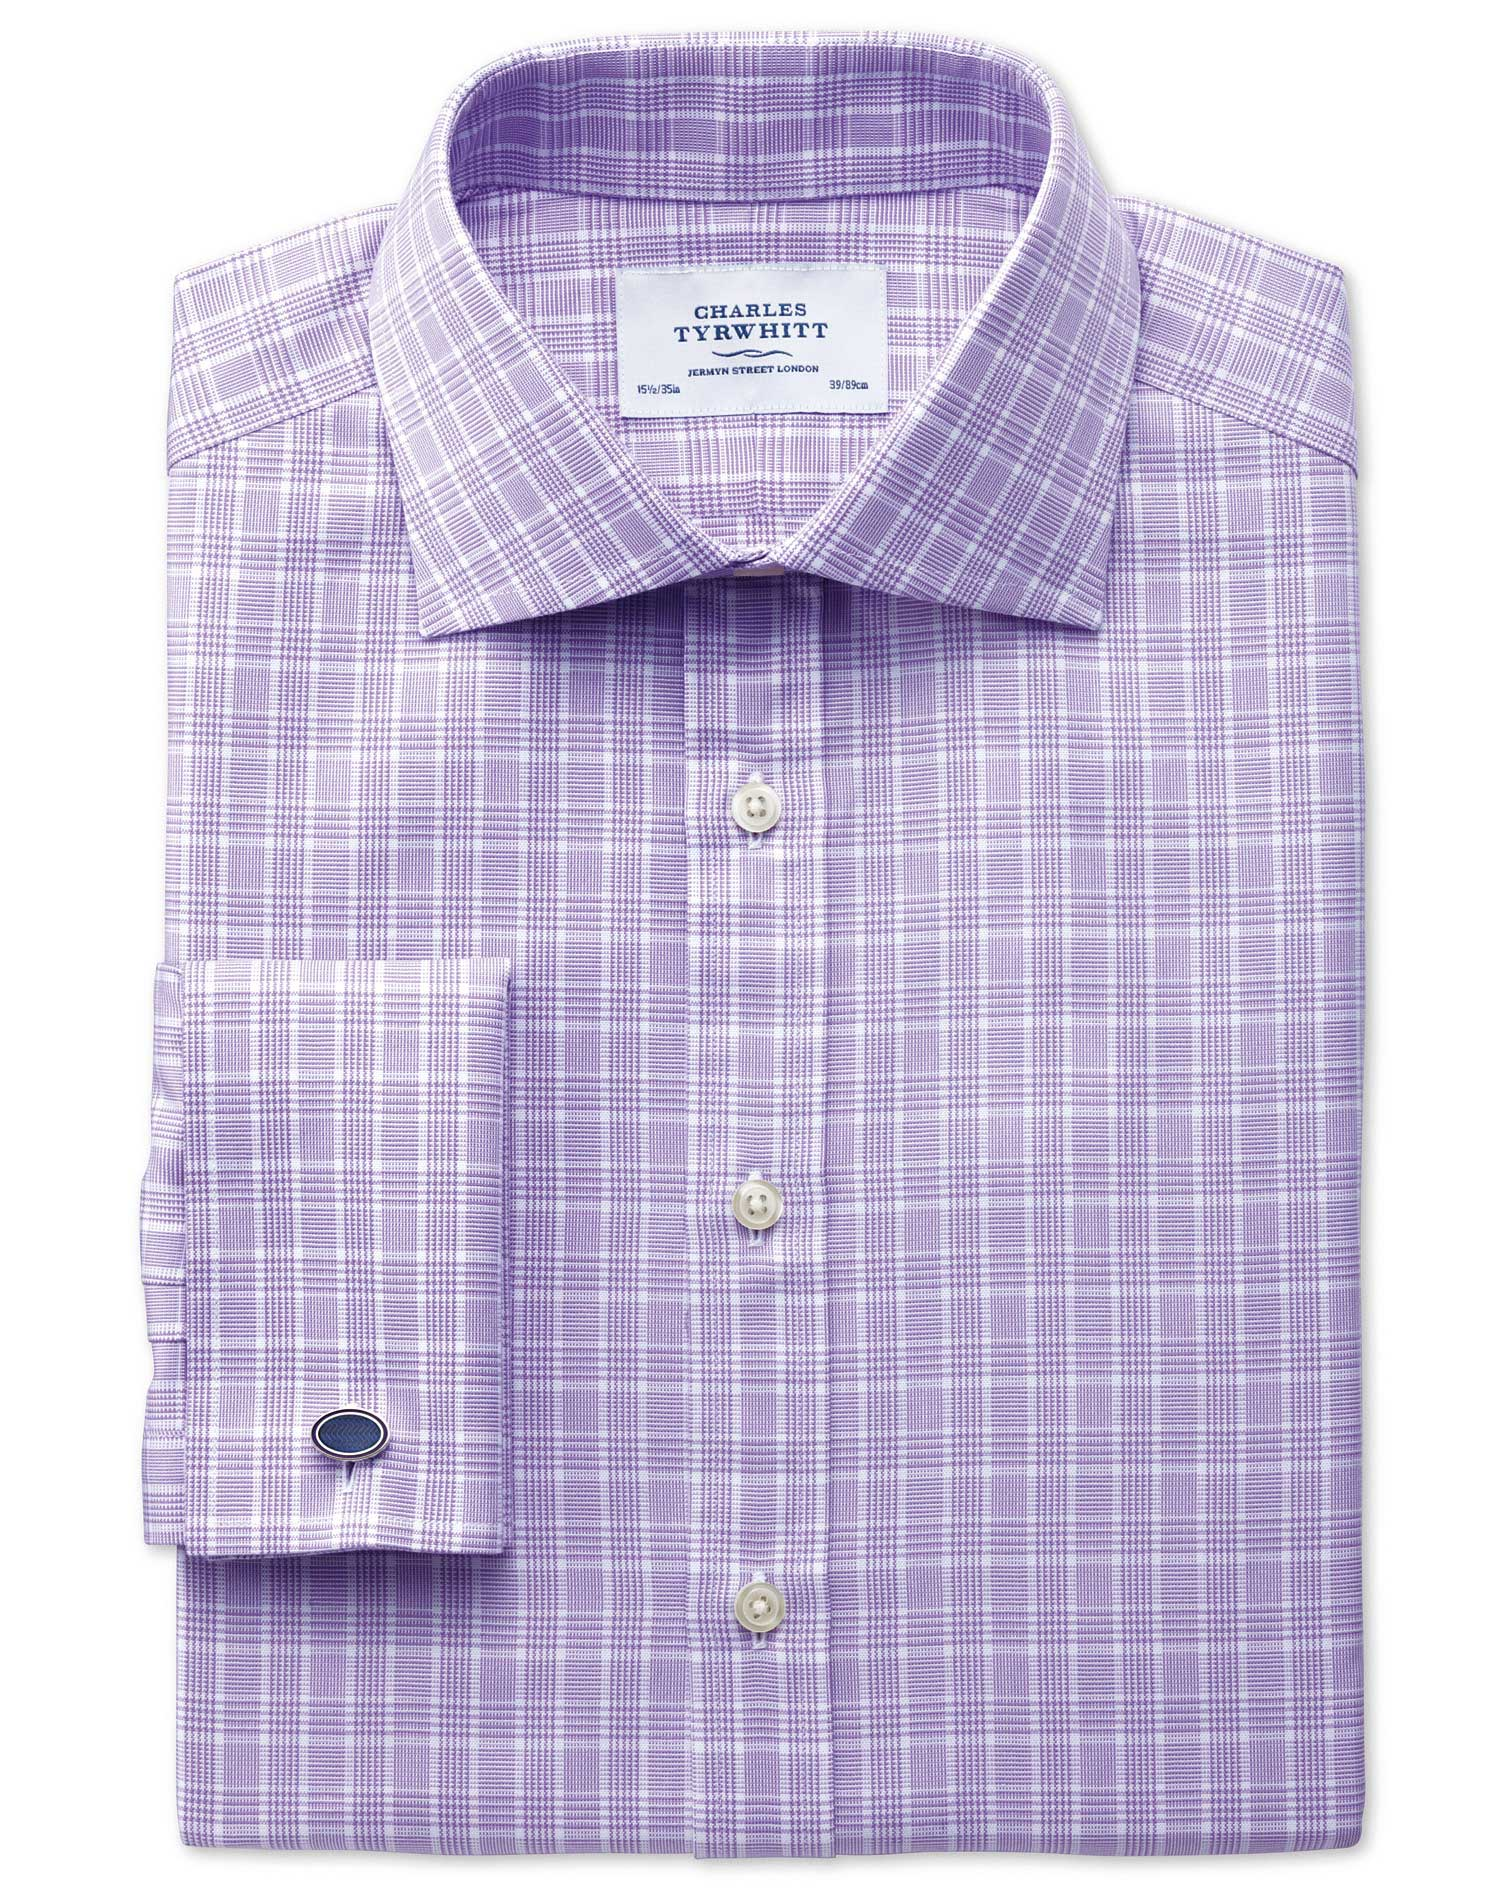 Extra Slim Fit Prince Of Wales Basketweave Lilac Cotton Formal Shirt Double Cuff Size 15.5/36 by Cha